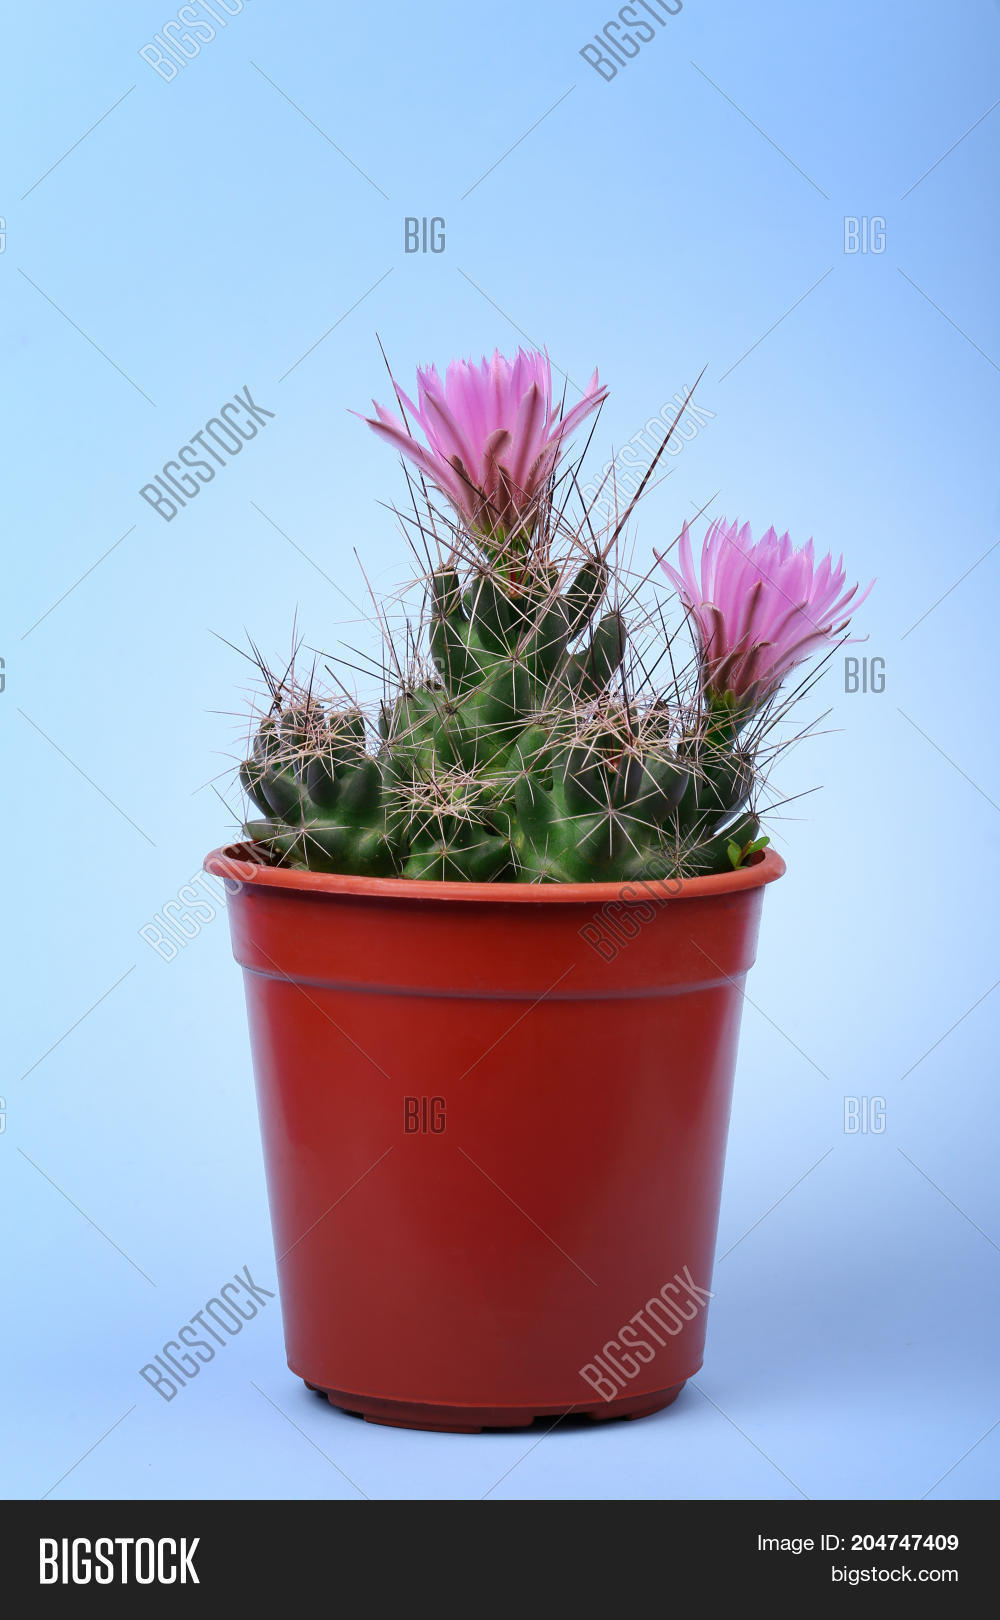 Lovely Plant Indoor Image Photo Free Trial Bigstock